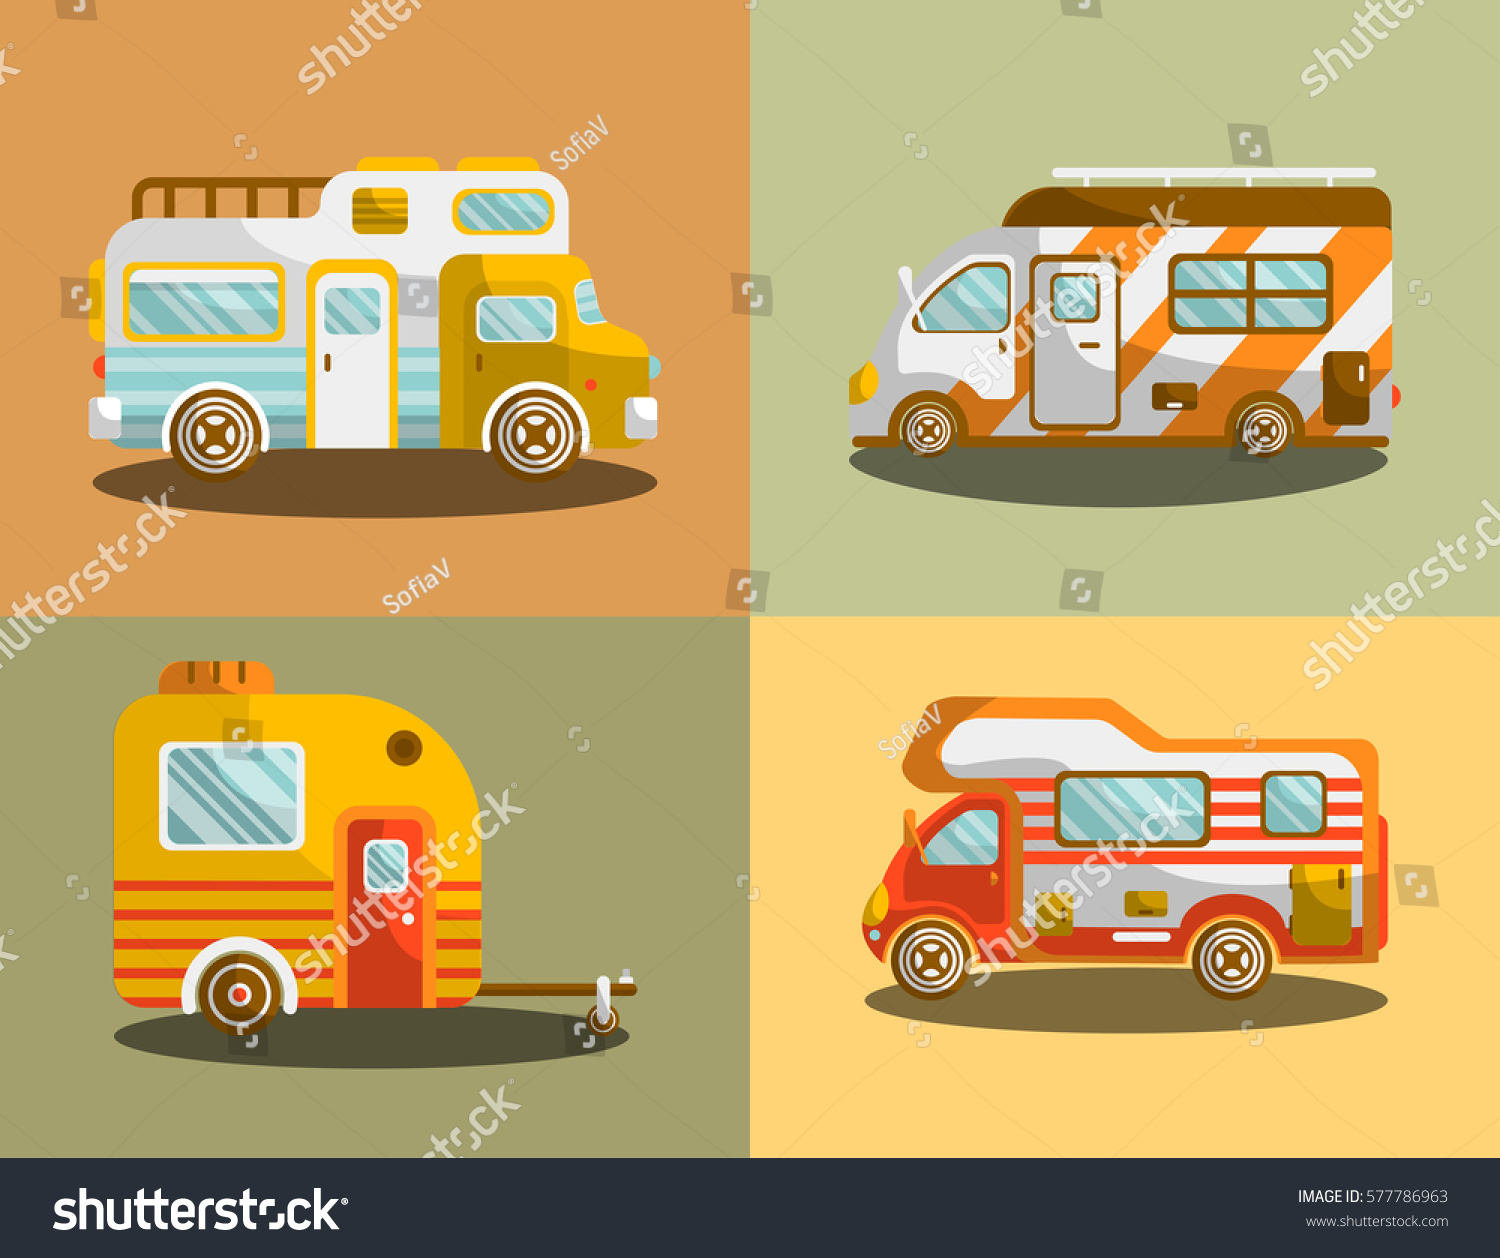 Vectors Illustrations Footage Music Camping Bus Or Camper Van Motorhome Car Vehicle Types Holiday Trip Mobile Accommodation Of